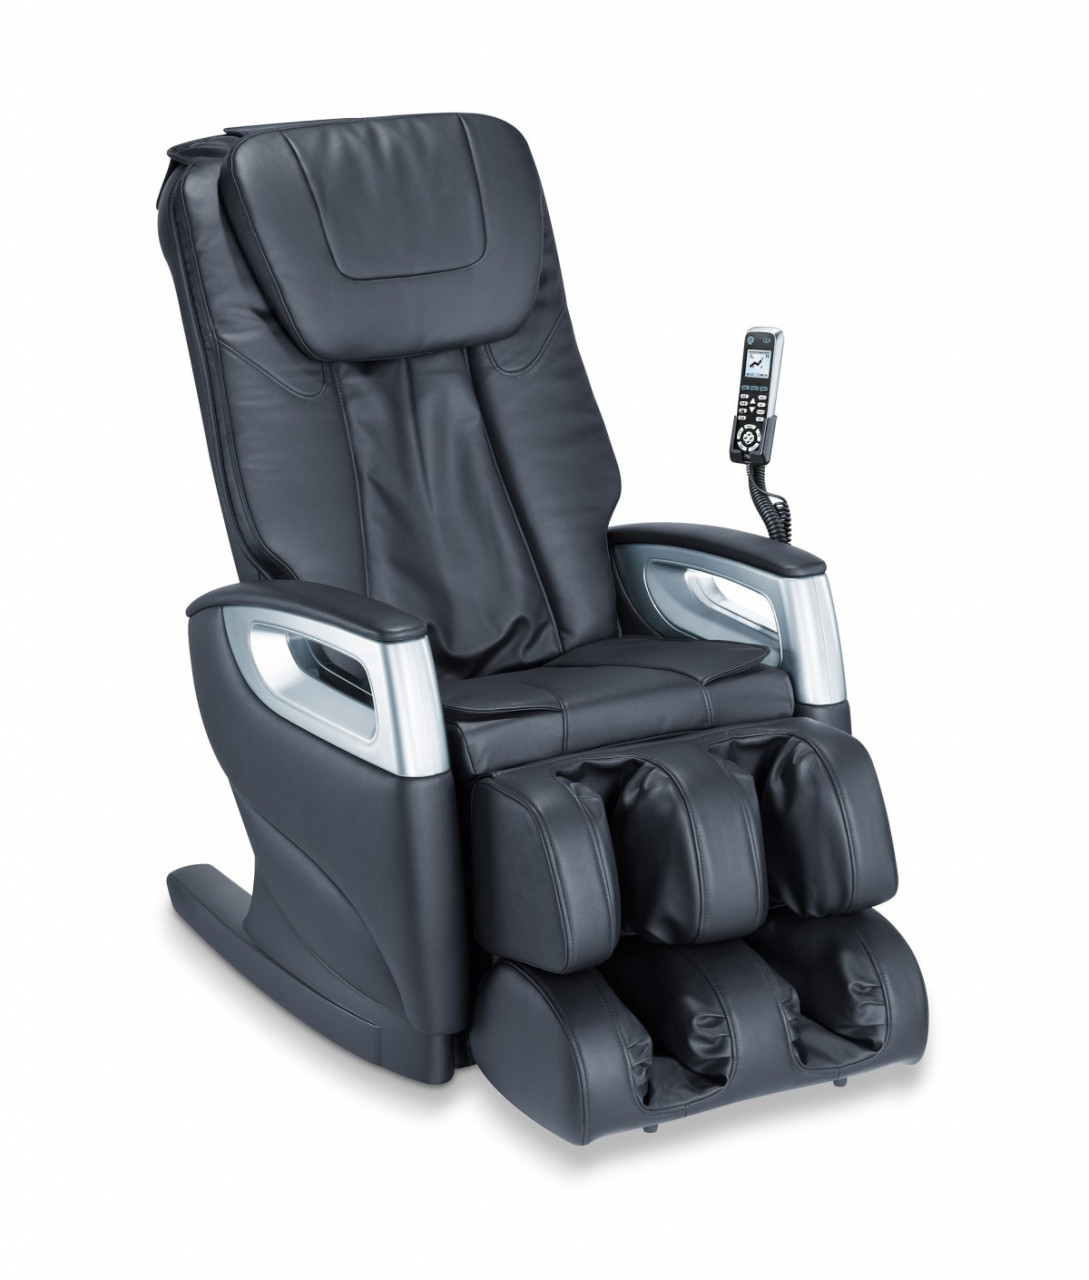 Massage Chair Cost Beurer Mc 5000 Deluxe Massage Price In Pakistan